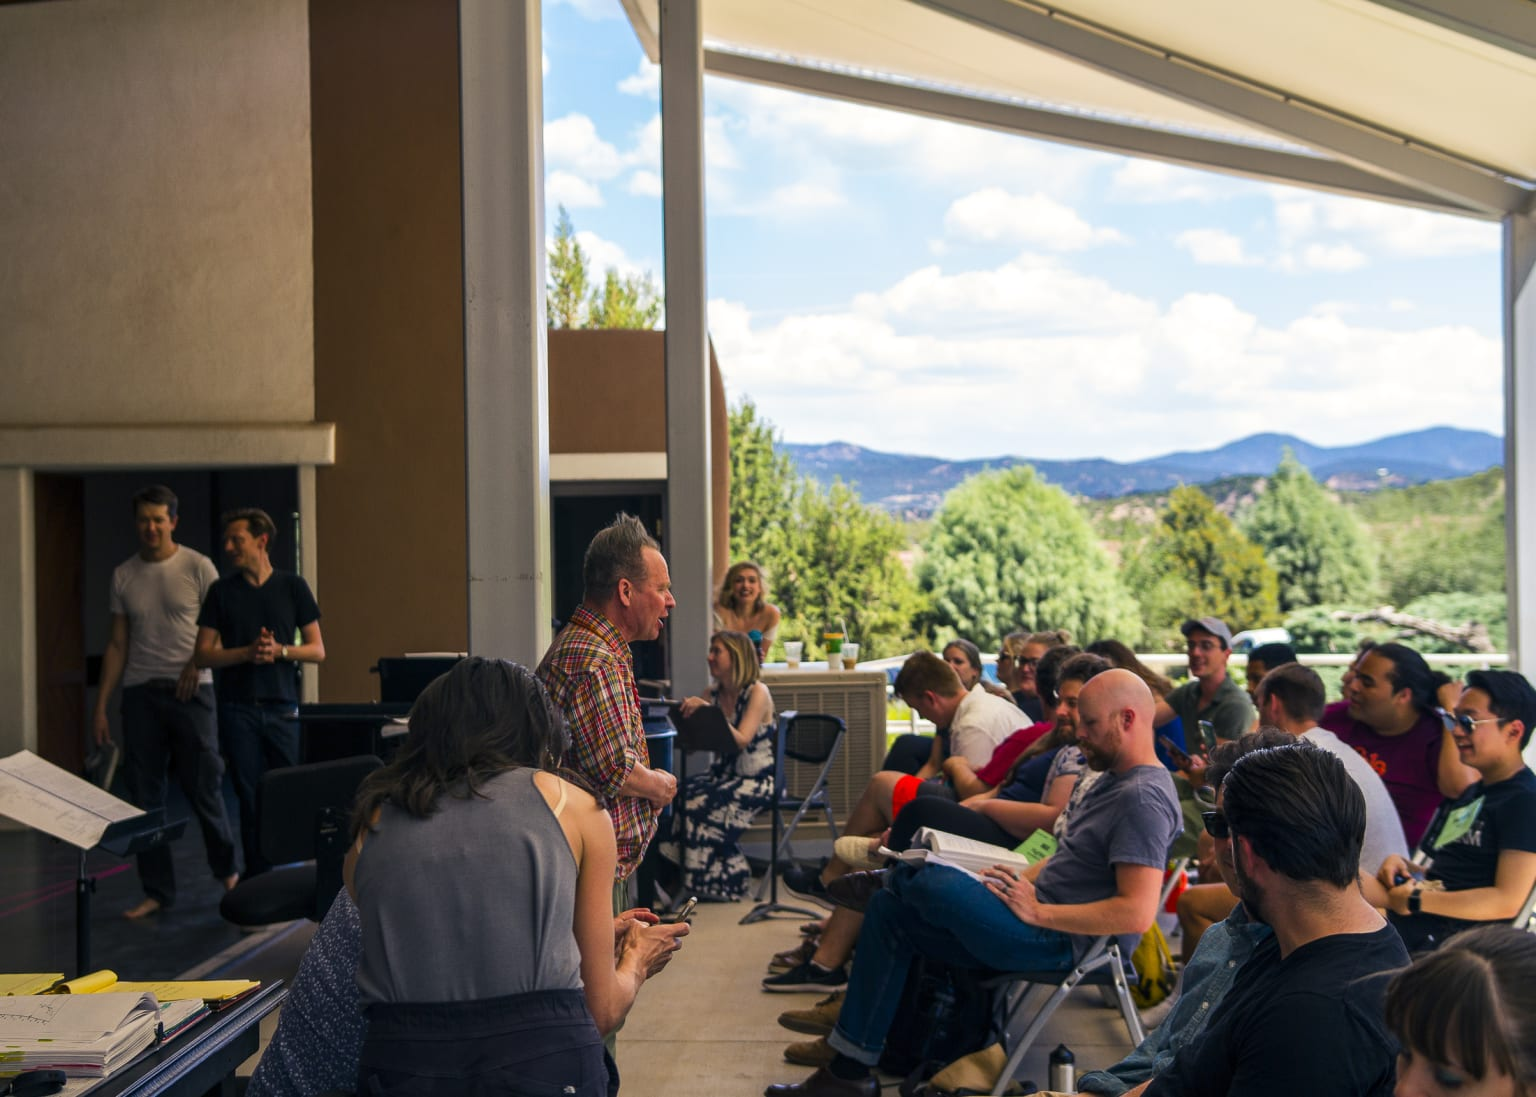 'Doctor Atomic' at the Santa Fe Opera for The New York Times